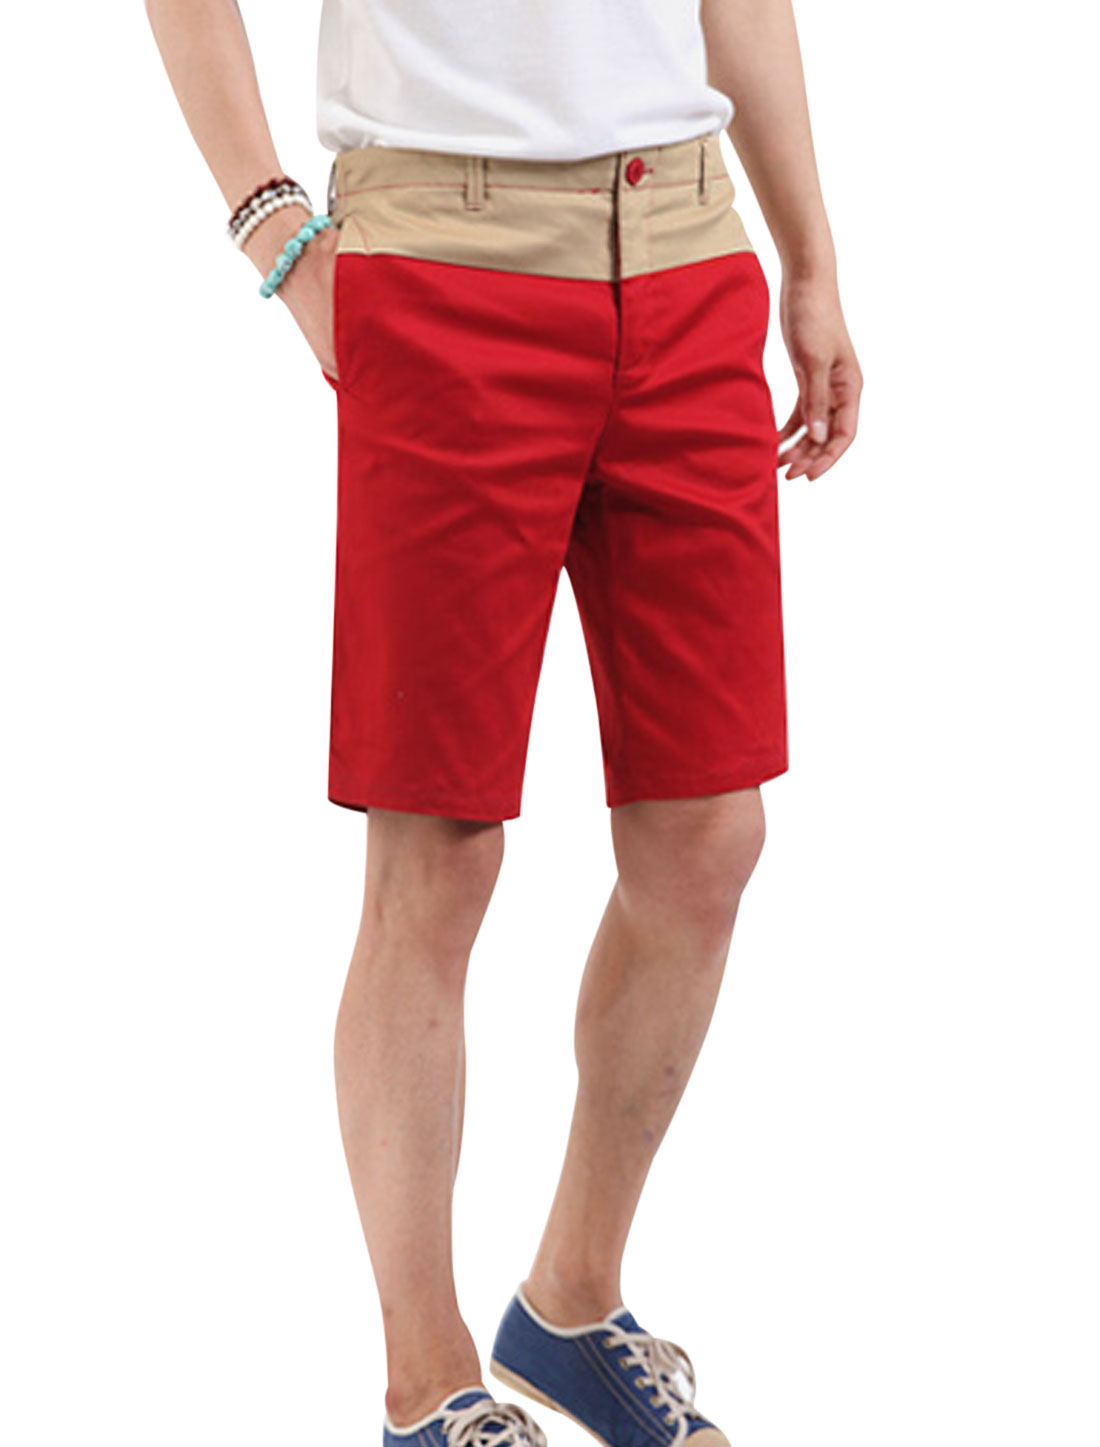 Men Color Block Fake Flap Pockets Back Cozy Fit Shorts Red Khaki W30